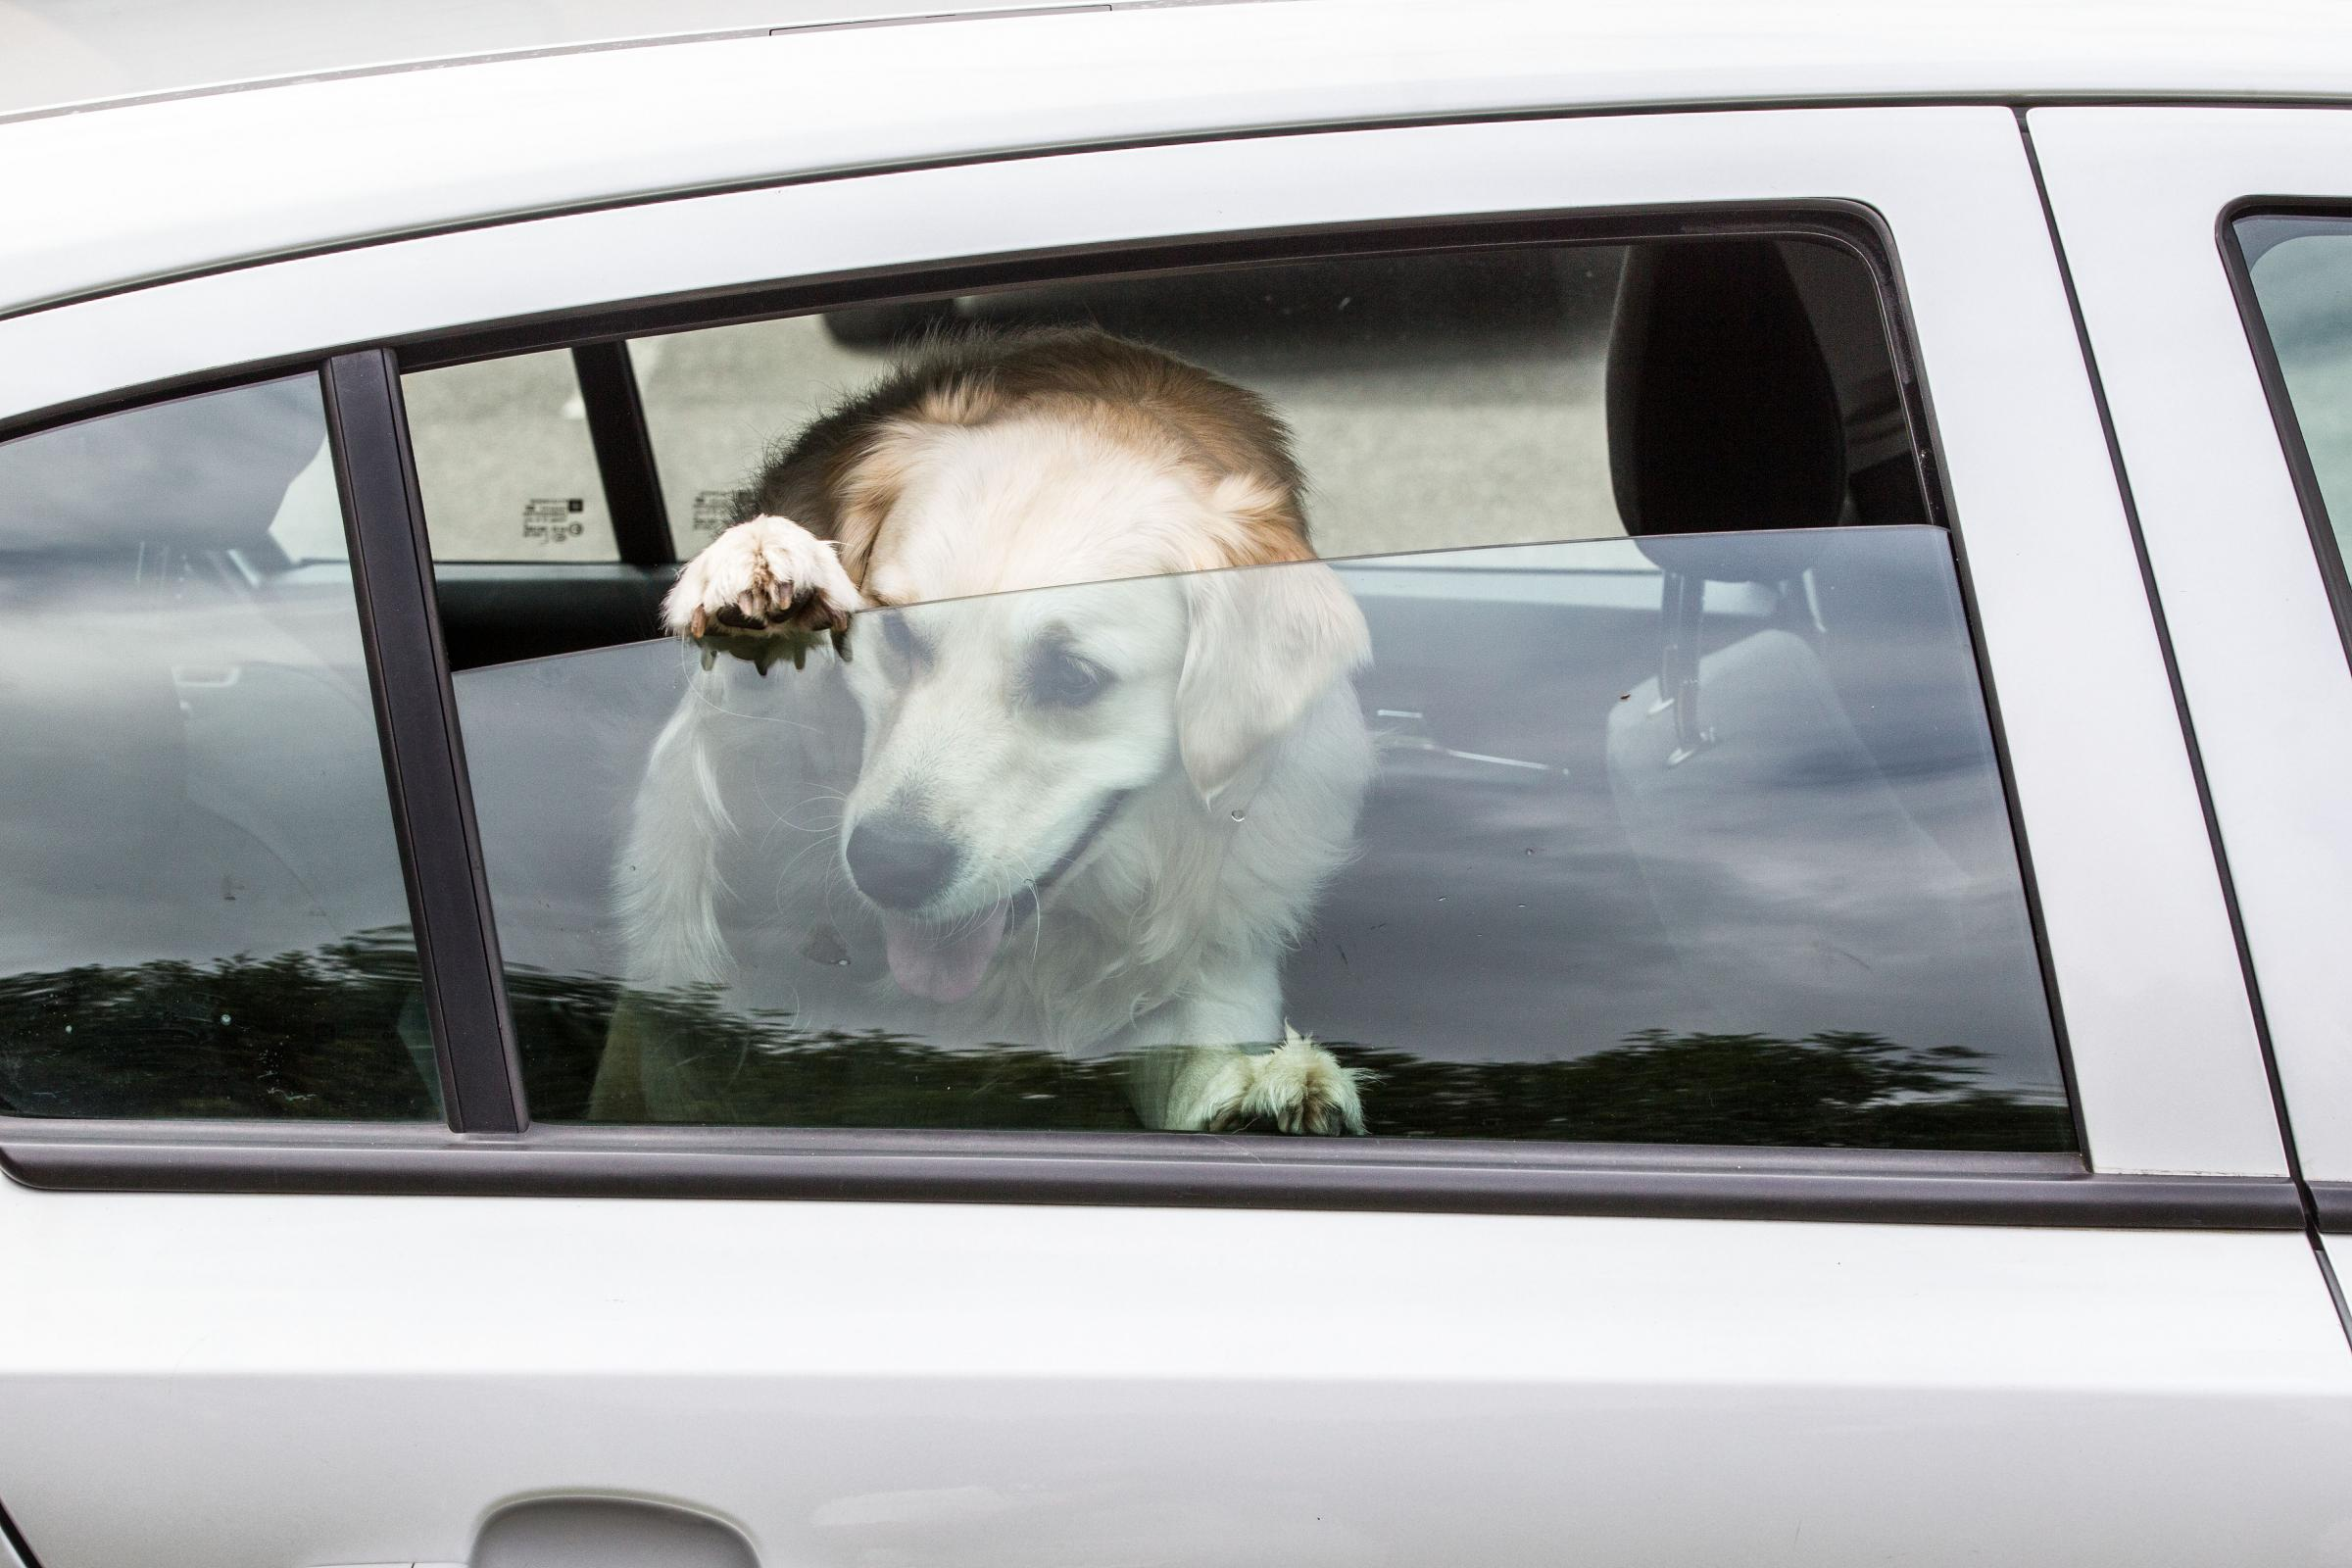 Warnings after police are called to dog in distress inside hot car